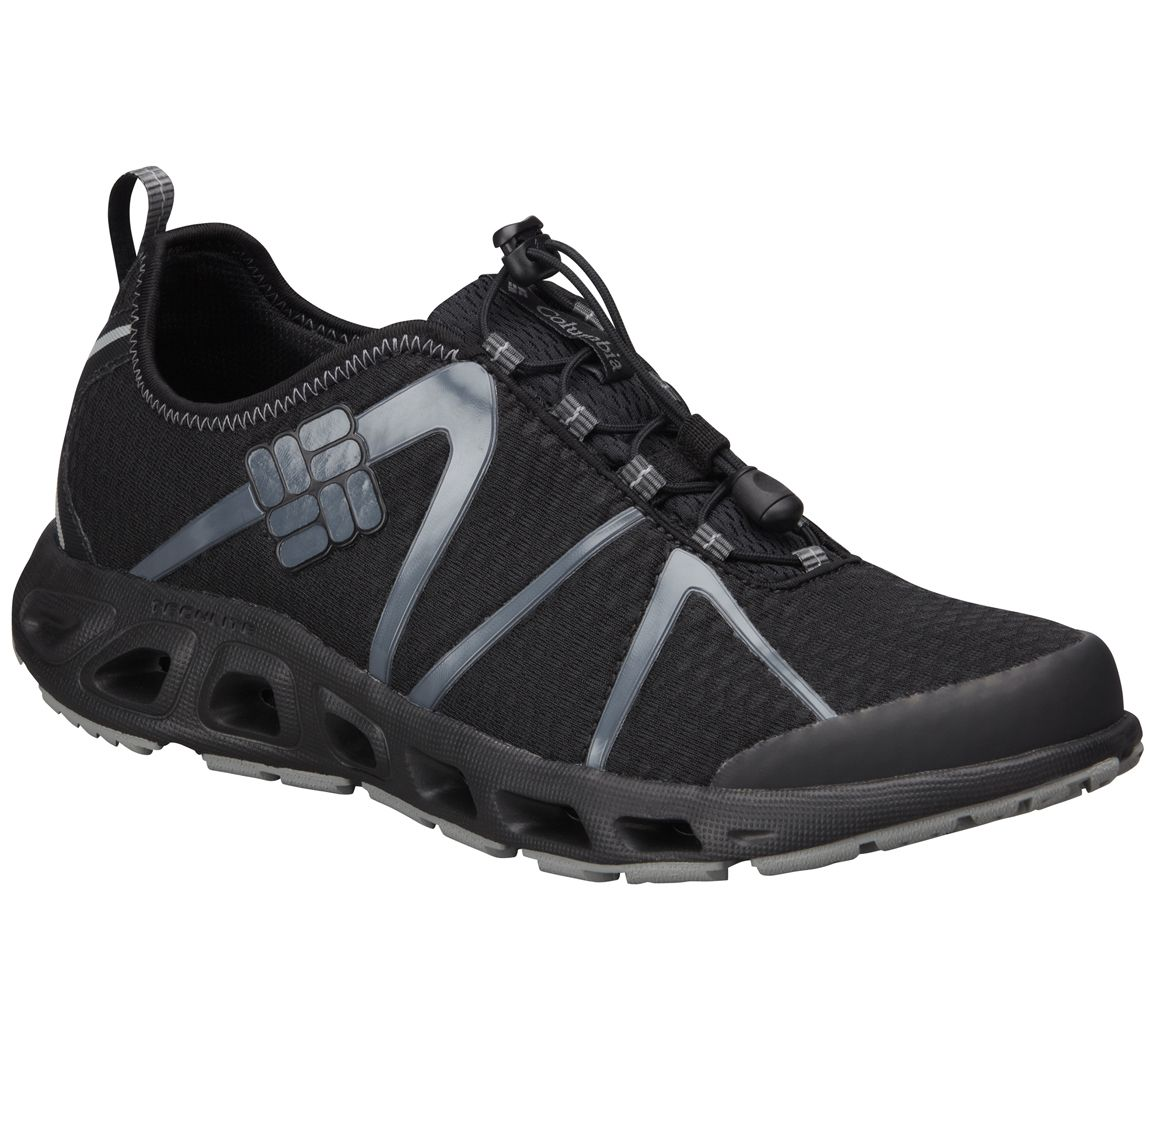 Columbia Power Drain Cool Pfg Shoe Black Platinum This Ultra Versatile Hybrid Shoe Features Omni Freeze Zero In Th Siyah Ayakkabilar Ayakkabi Erkek Columbia